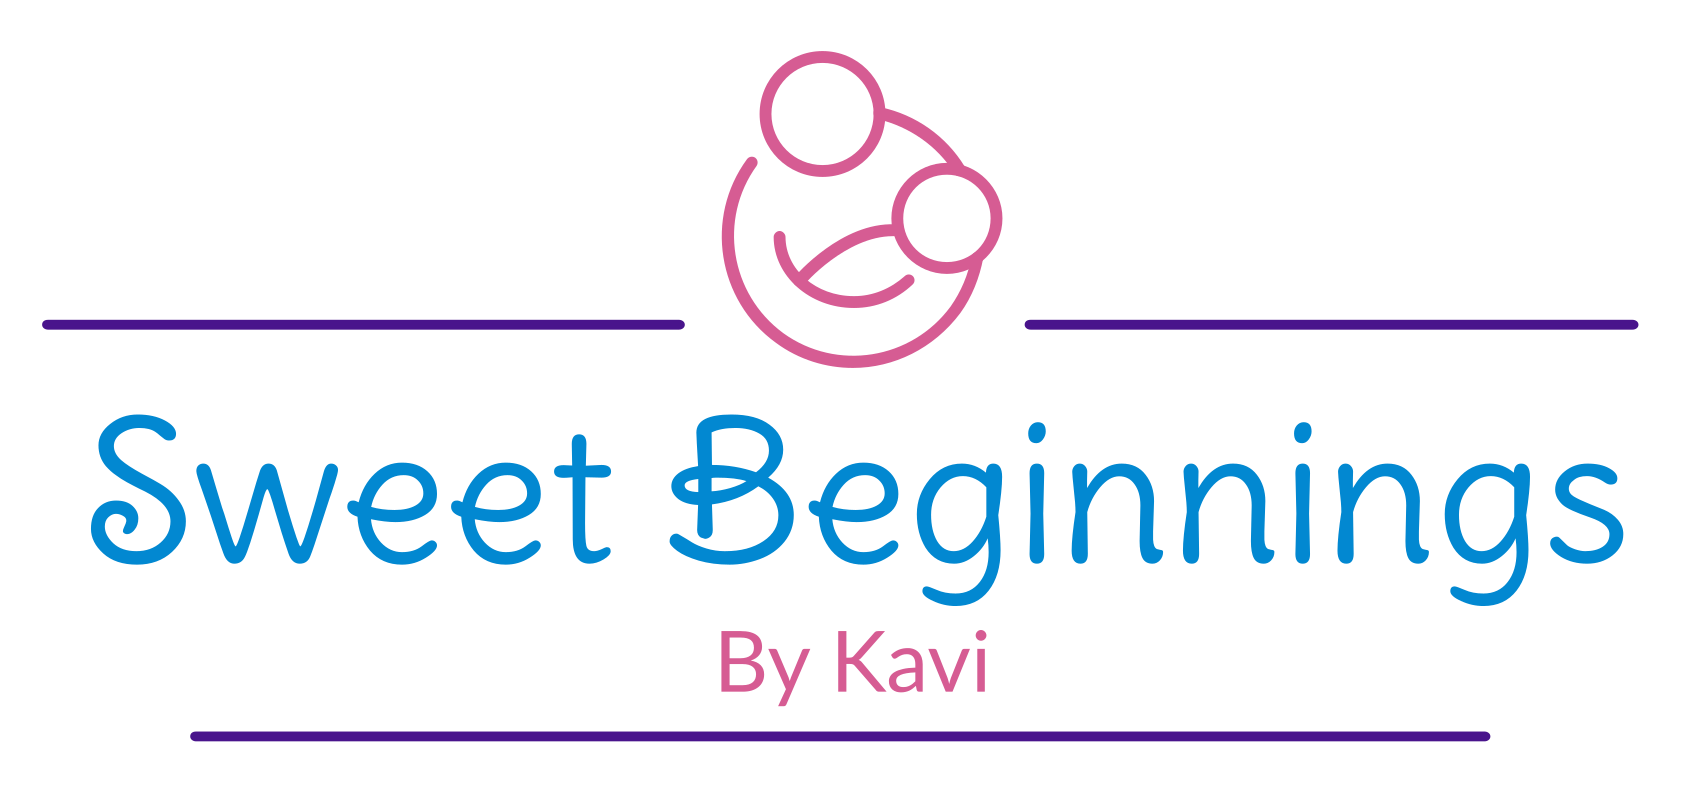 Sweet Beginnings by KAVI